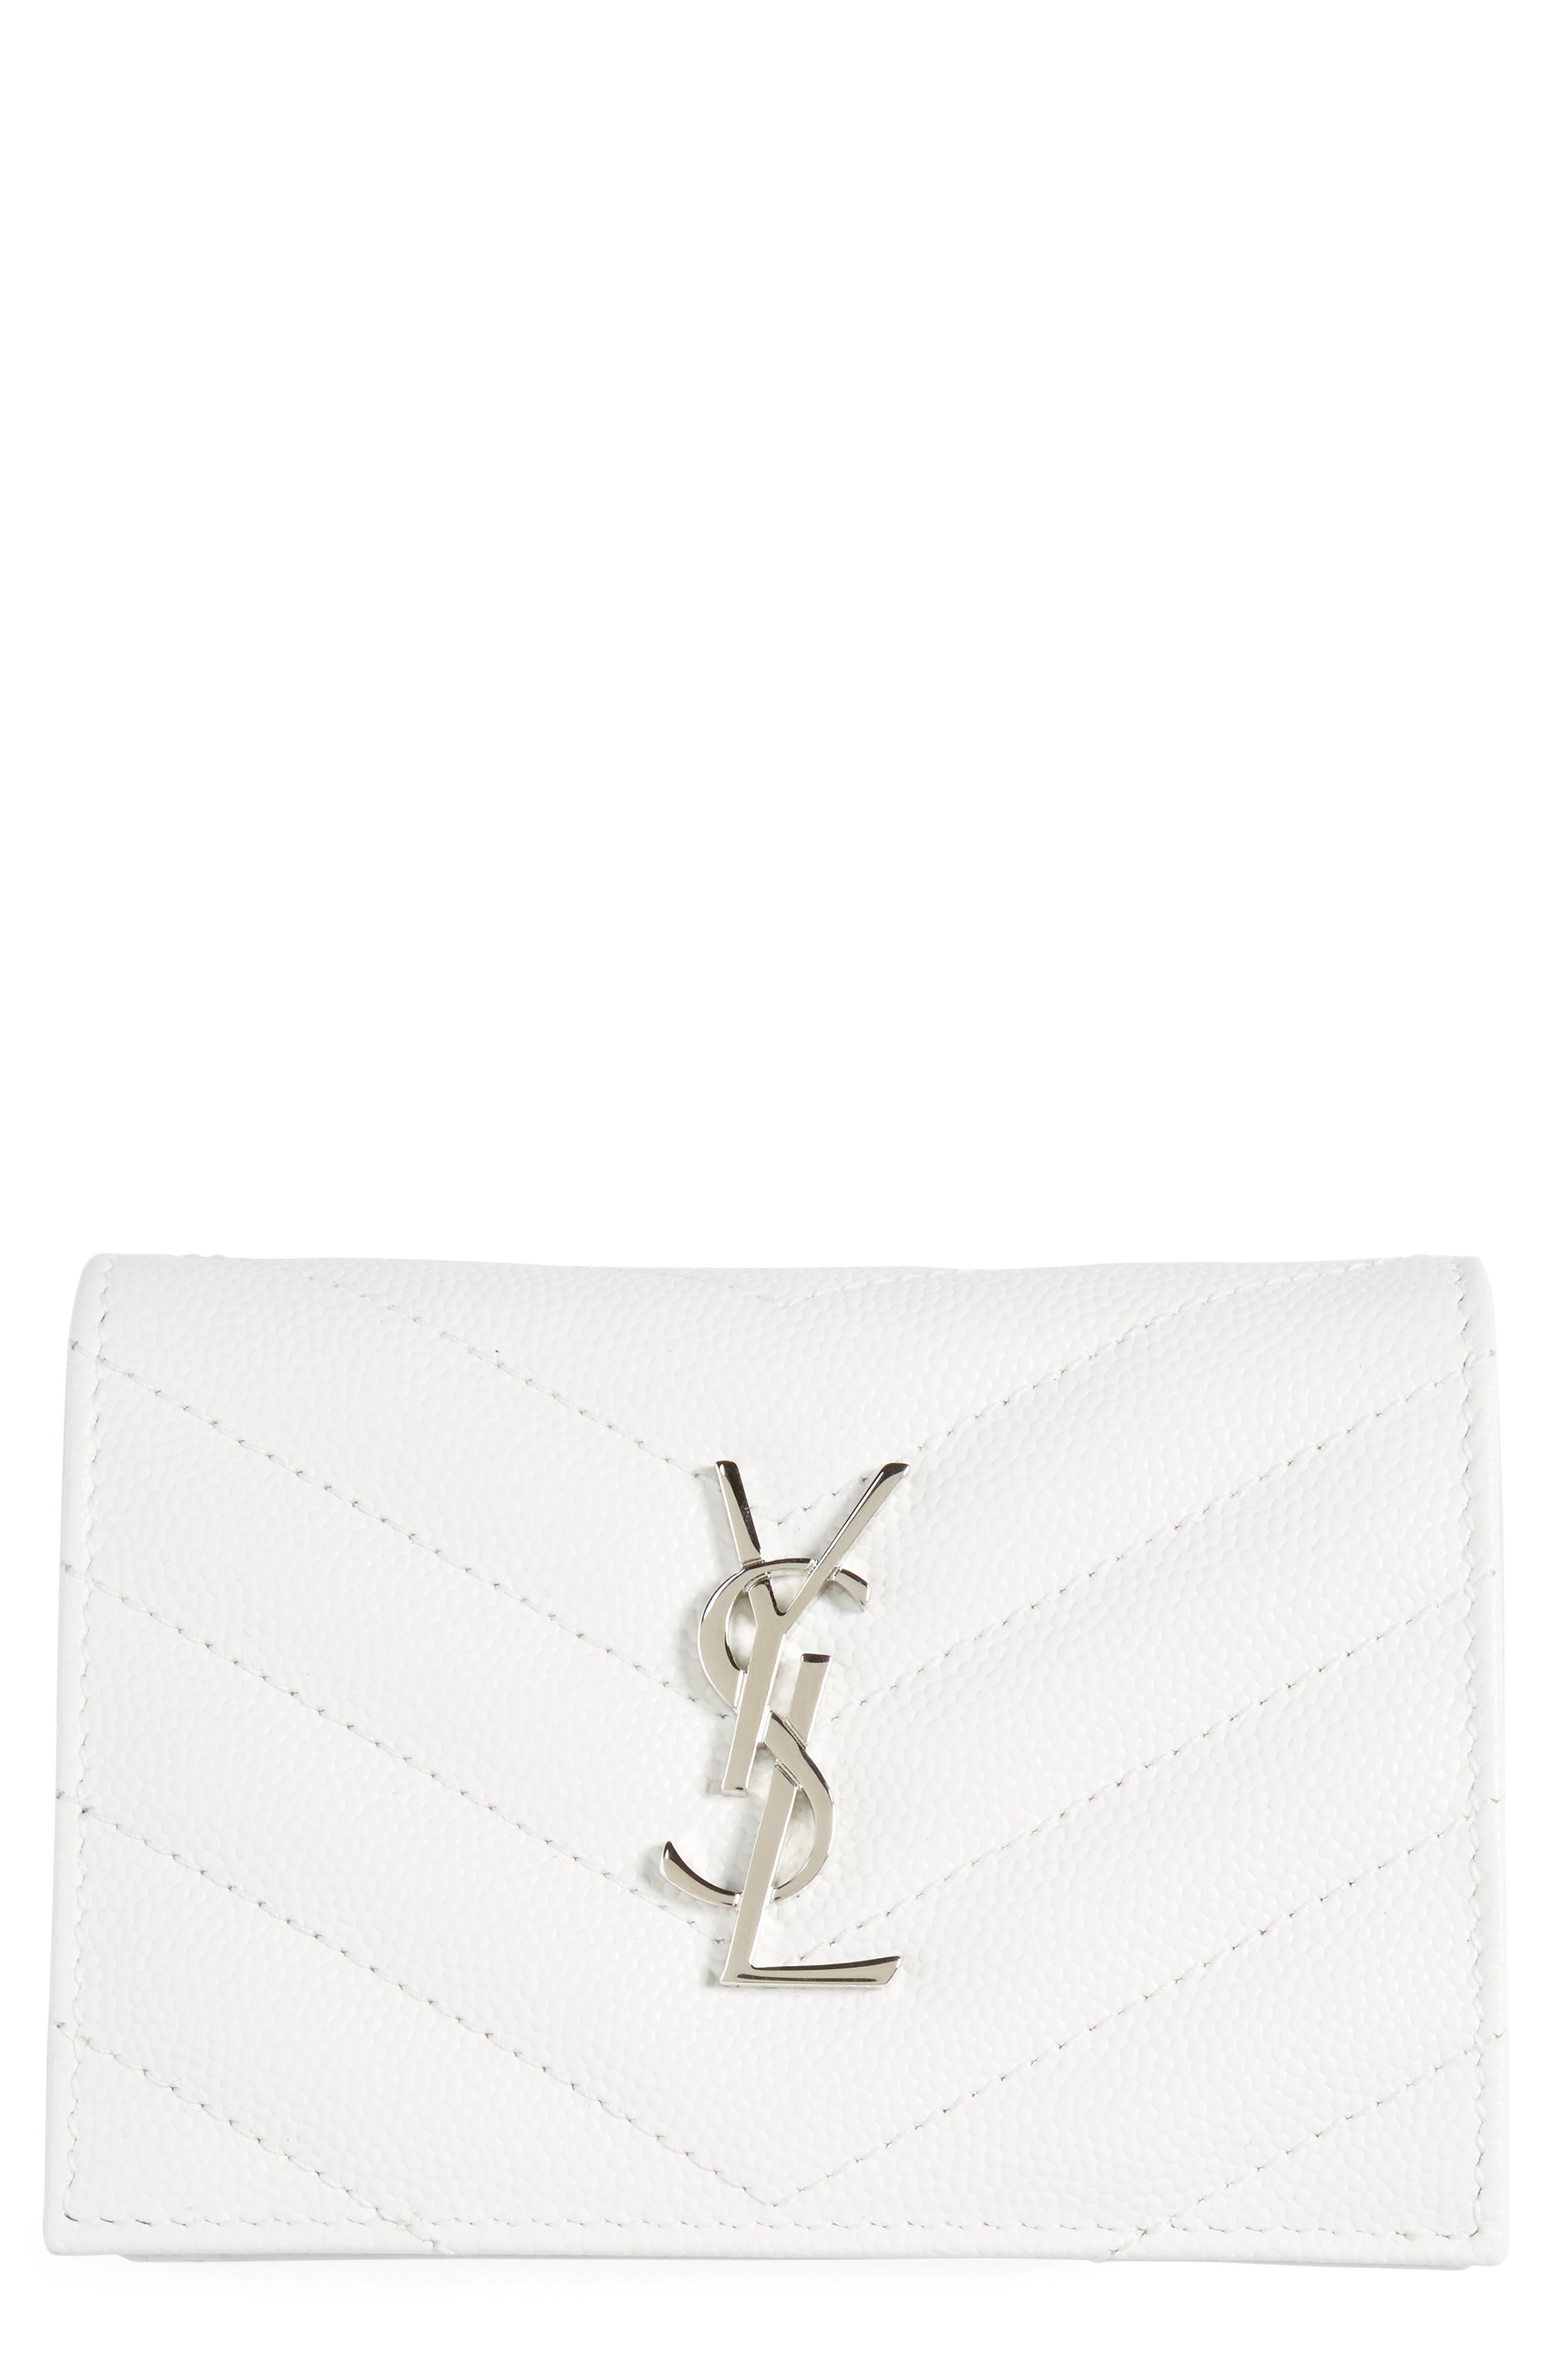 Main Image - Saint Laurent Textured Leather Card Case